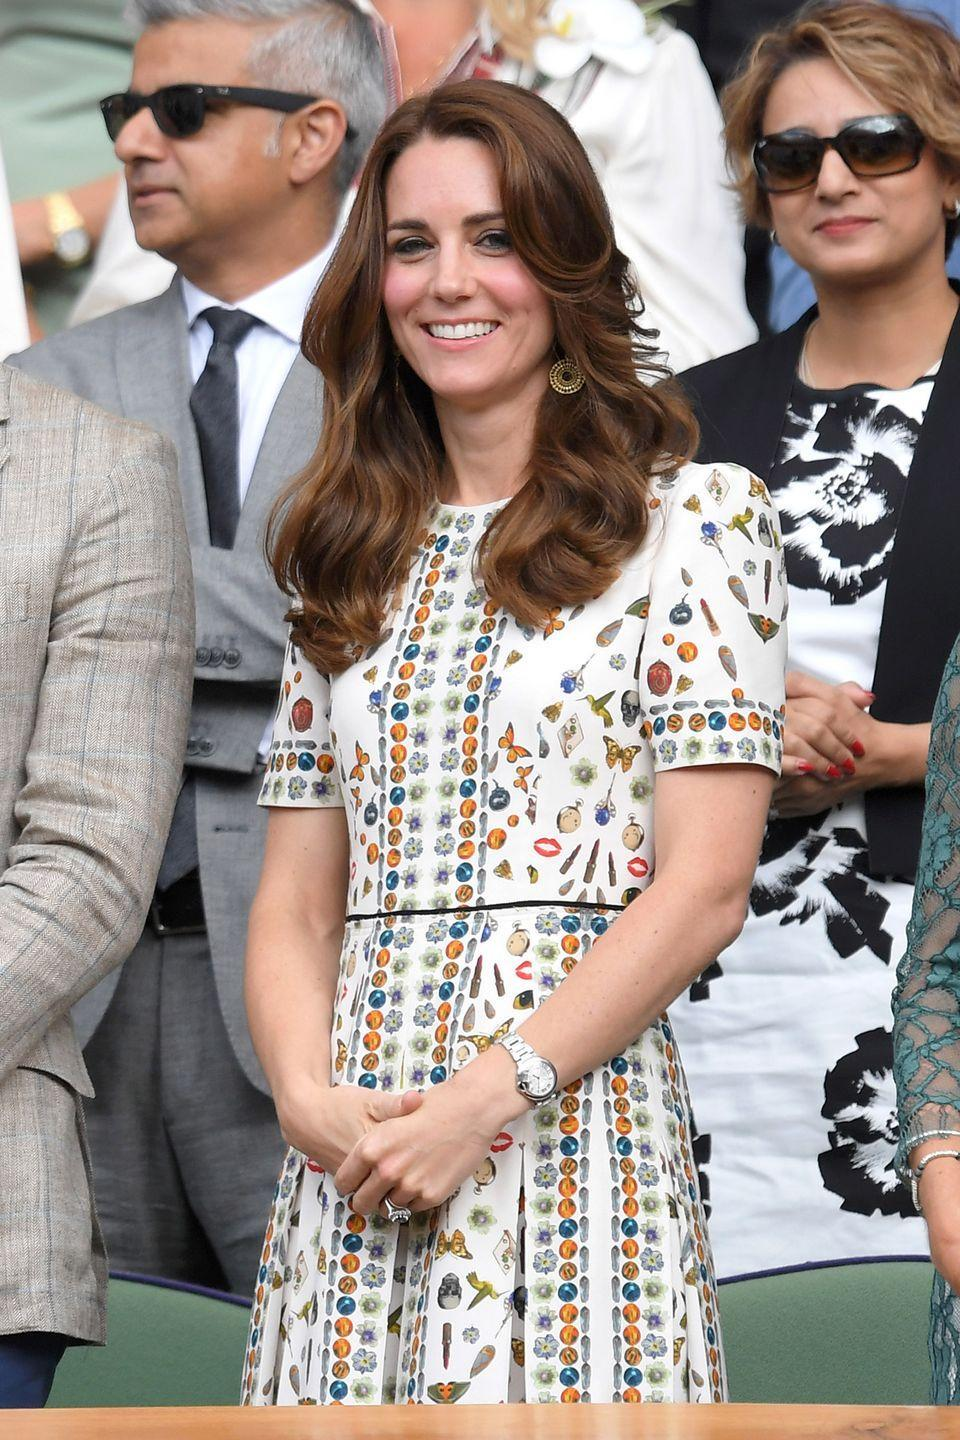 <p>The Duchess wore an Alexander McQueen printed midi dress, gold pendant earrings and a silver watch to the Wimbledon men's final. </p>